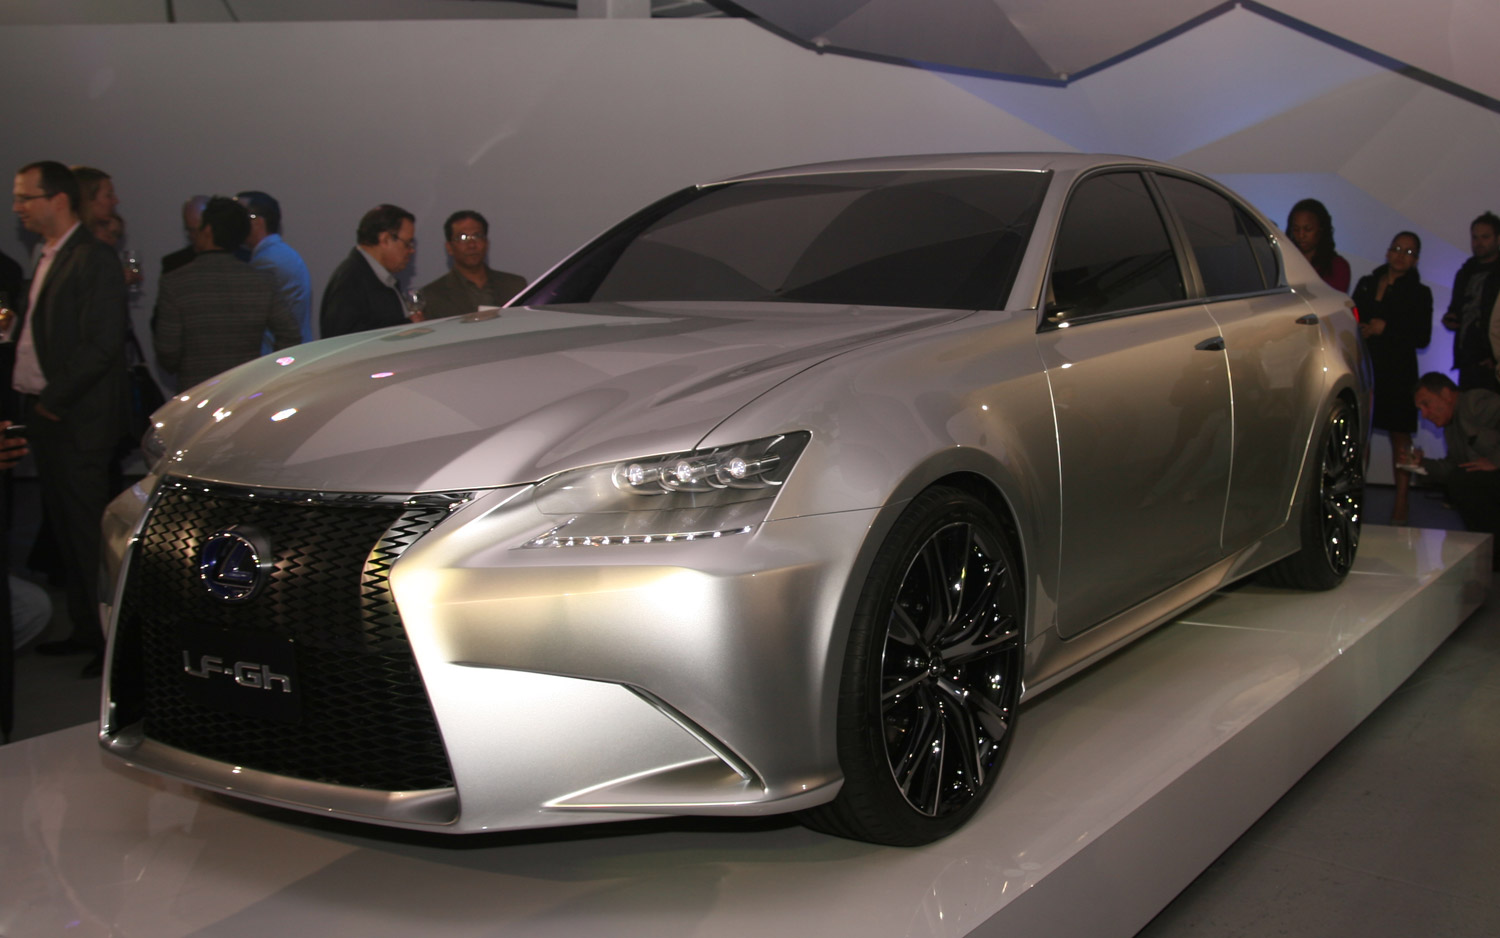 https://enthusiastnetwork.s3.amazonaws.com/uploads/sites/5/2011/04/lexus-lf-gh-concept-left-front-three-quarter.jpg?impolicy=entryimage